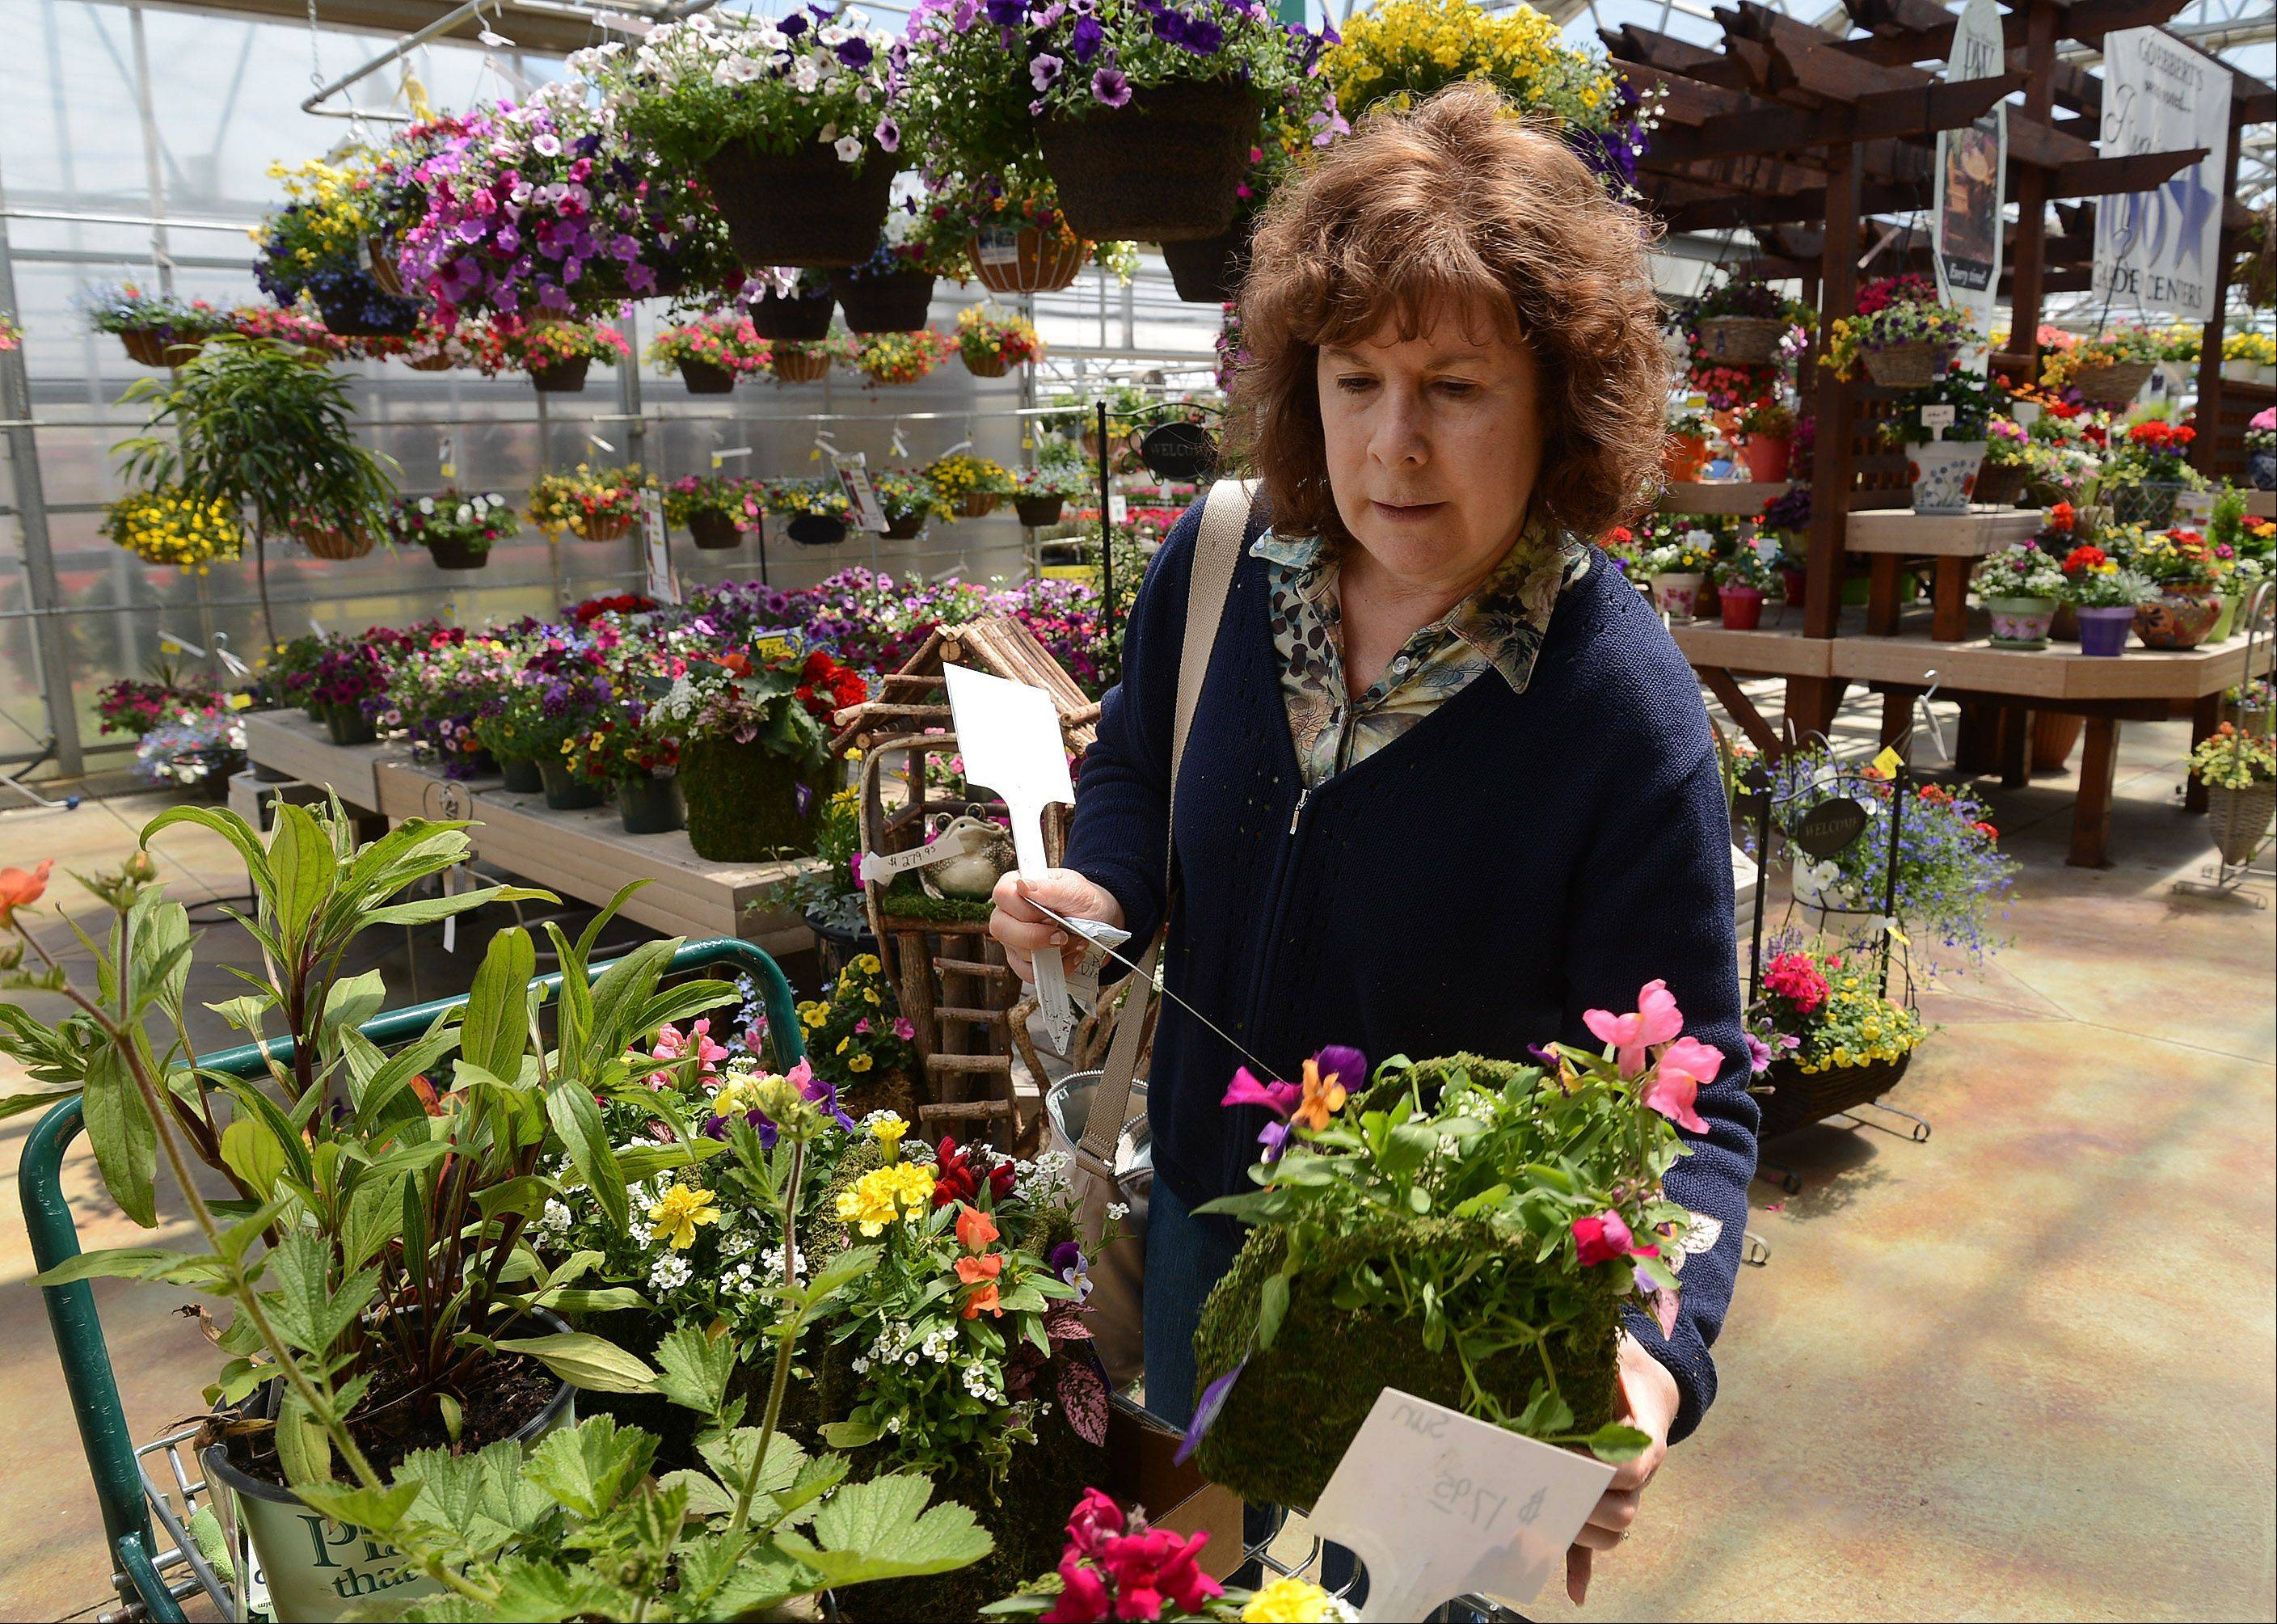 Delaying her planting until Monday's early frost gives way to a heat wave, Paula Ichert of Hoffman Estates picks out some flowers at Goebbert's Farm & Garden Center in South Barrington.